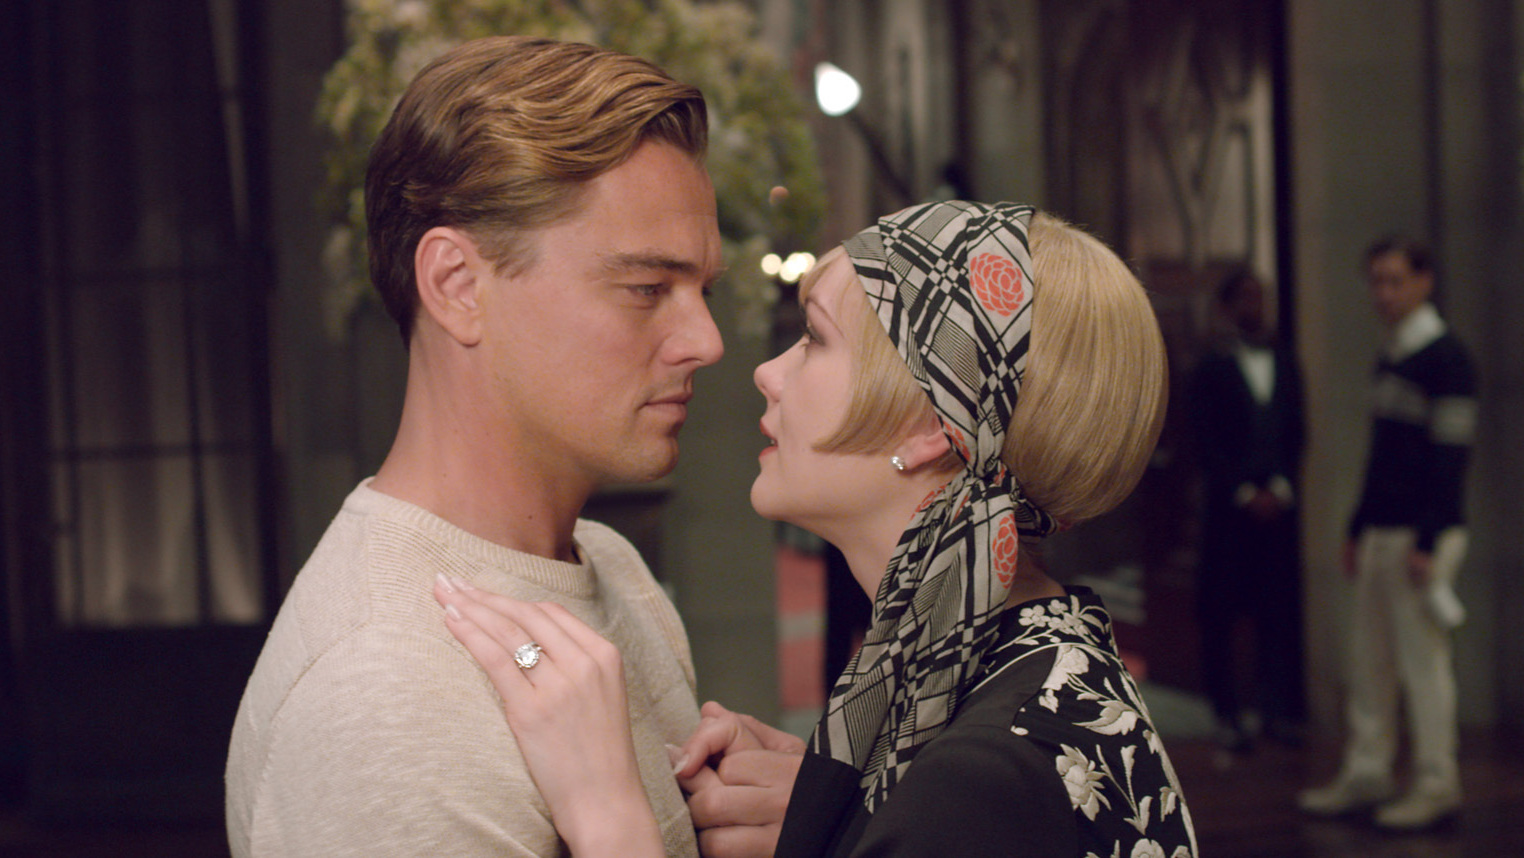 'It Led Us On A Journey': The Musical World Of 'The Great Gatsby'